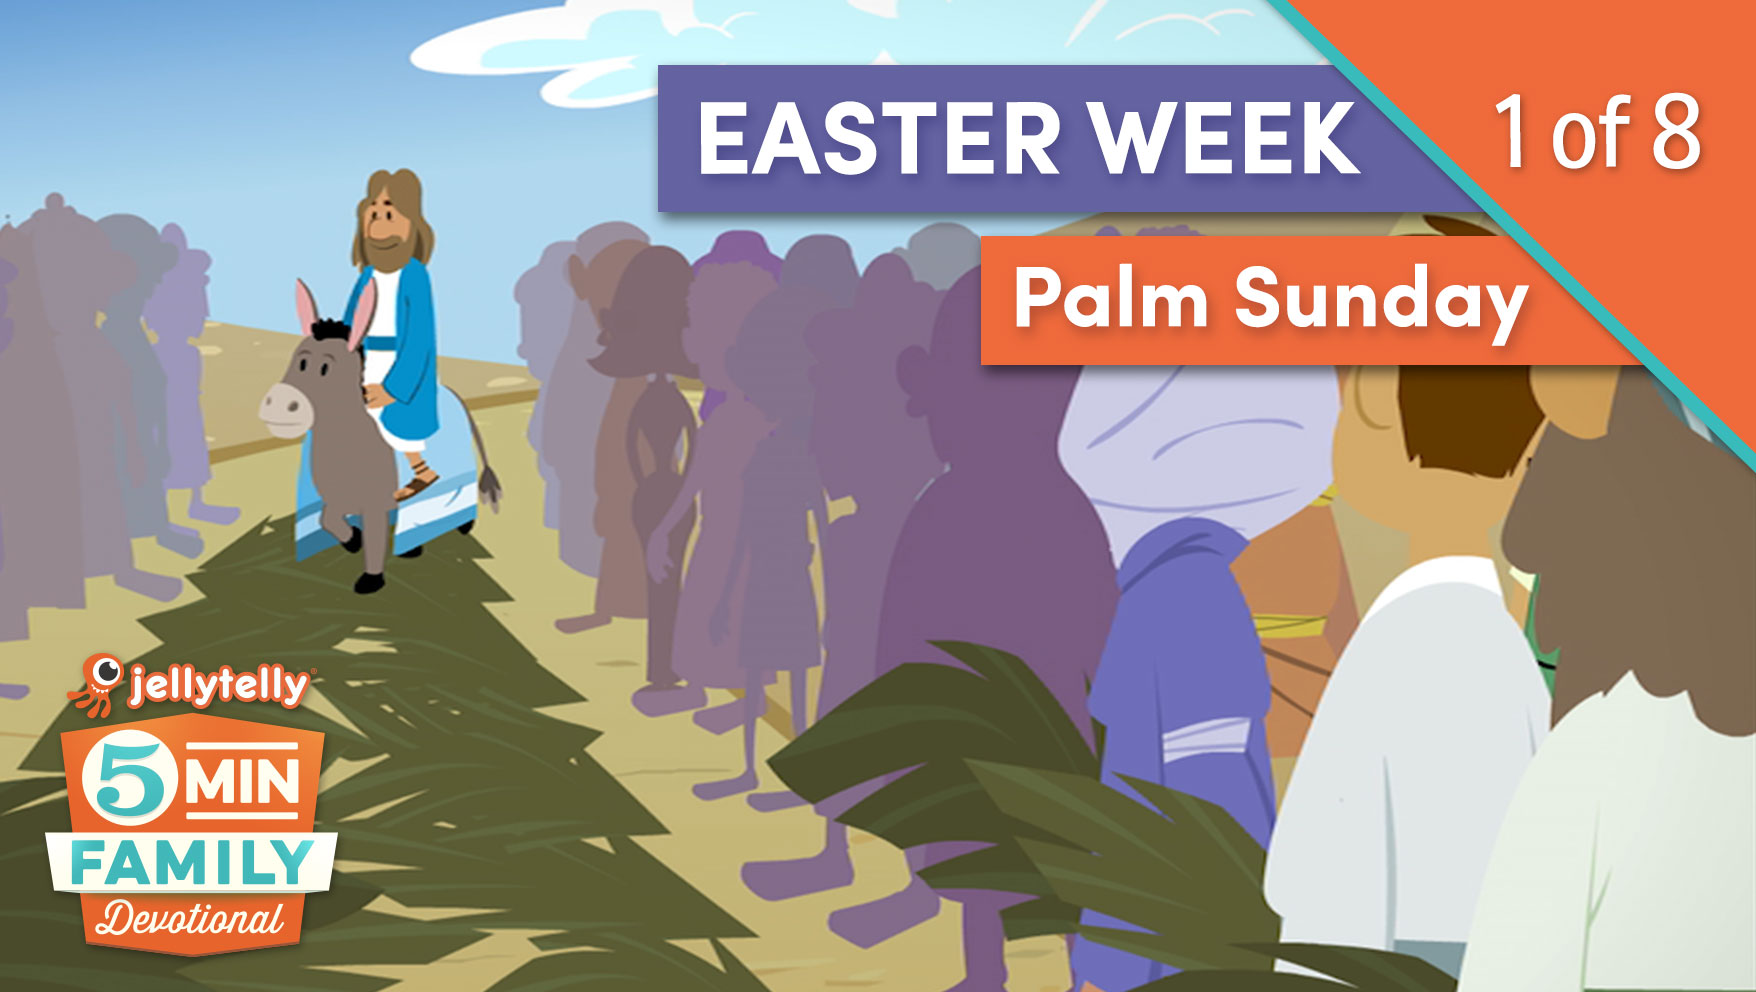 Palm Sunday - Easter 5 Minute Family Devotional